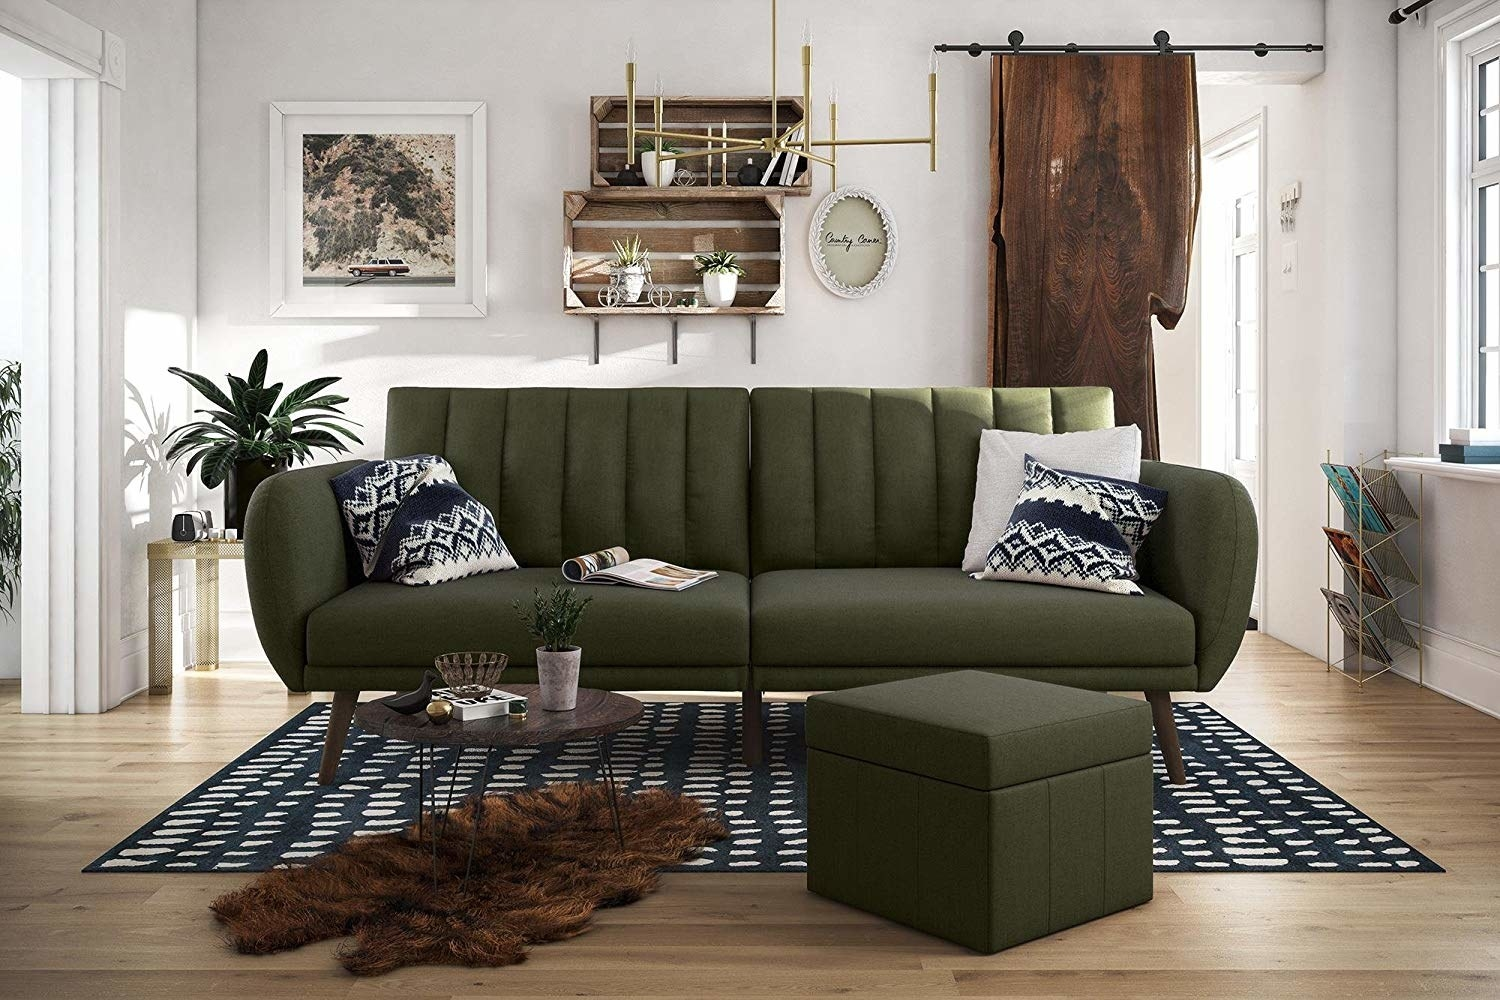 The tufted-back futon with large arms and wood feet in a living room